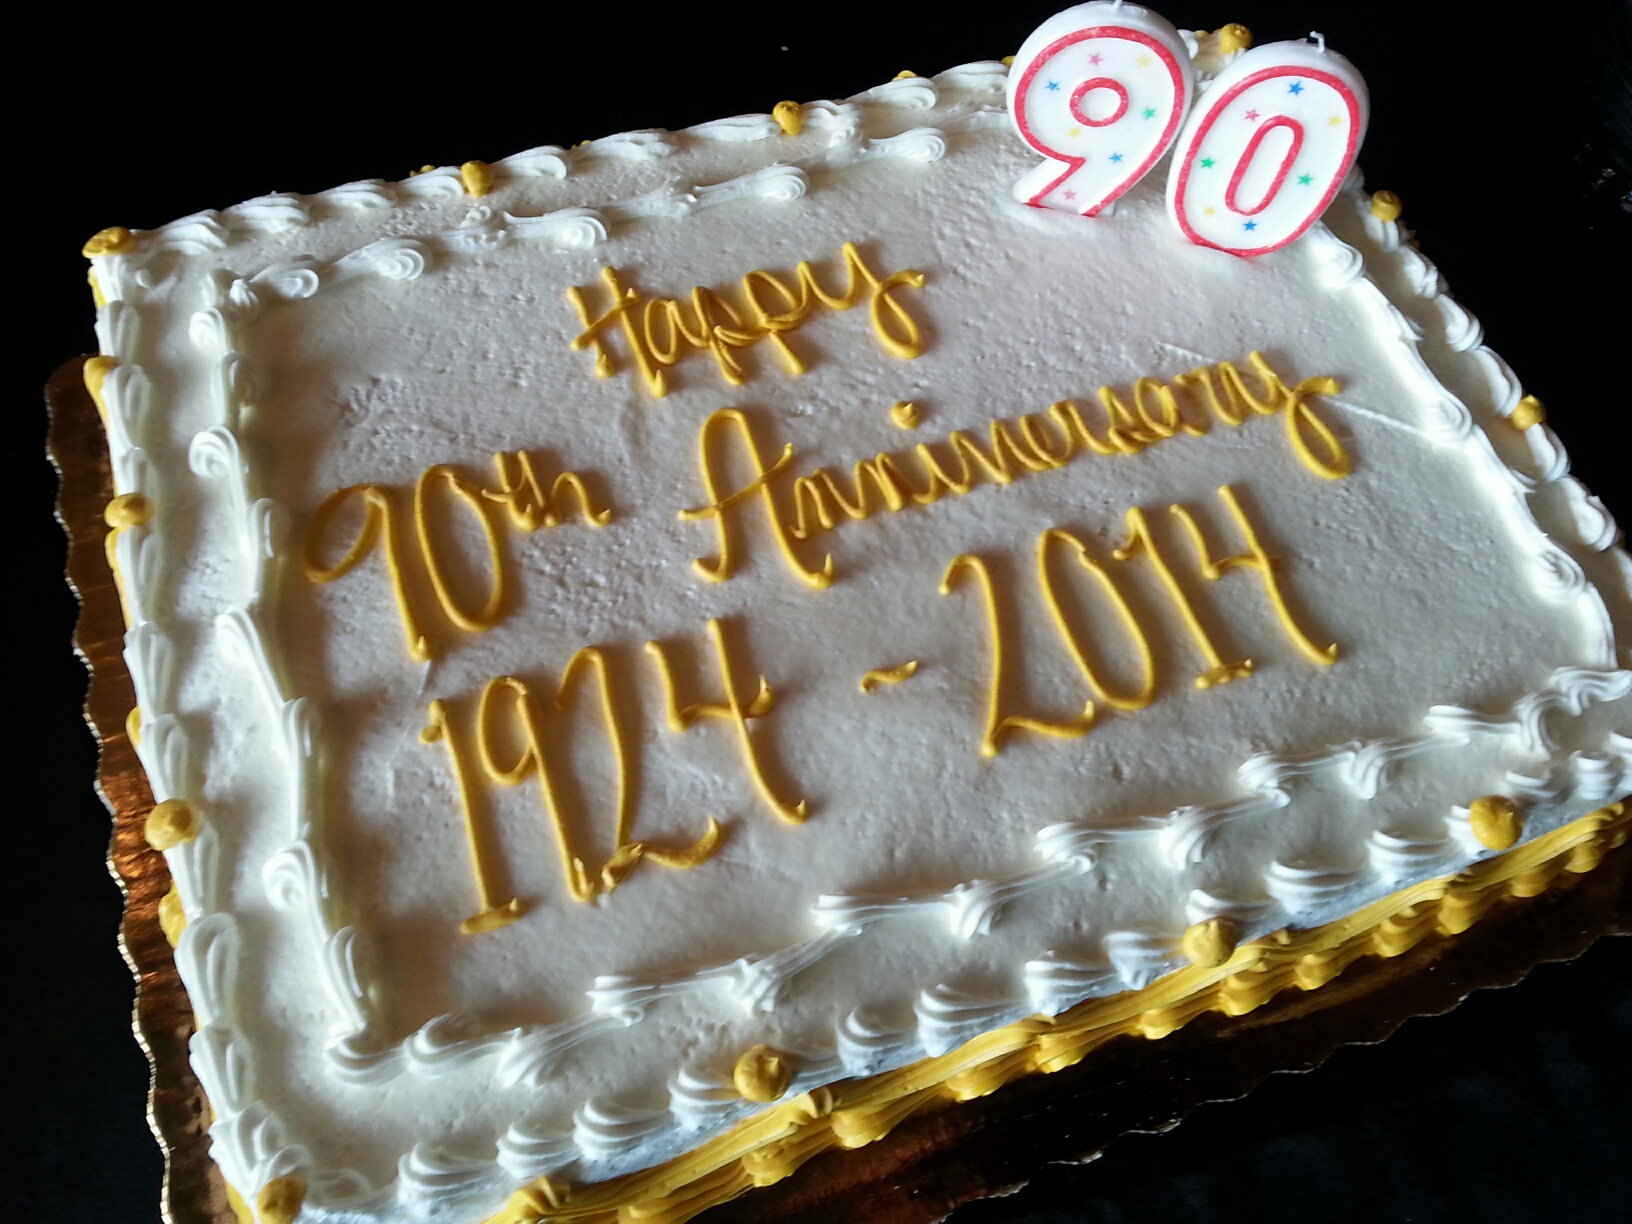 90th-anniversary-cake-lebanon-wilson-county-chamber-of-commerce